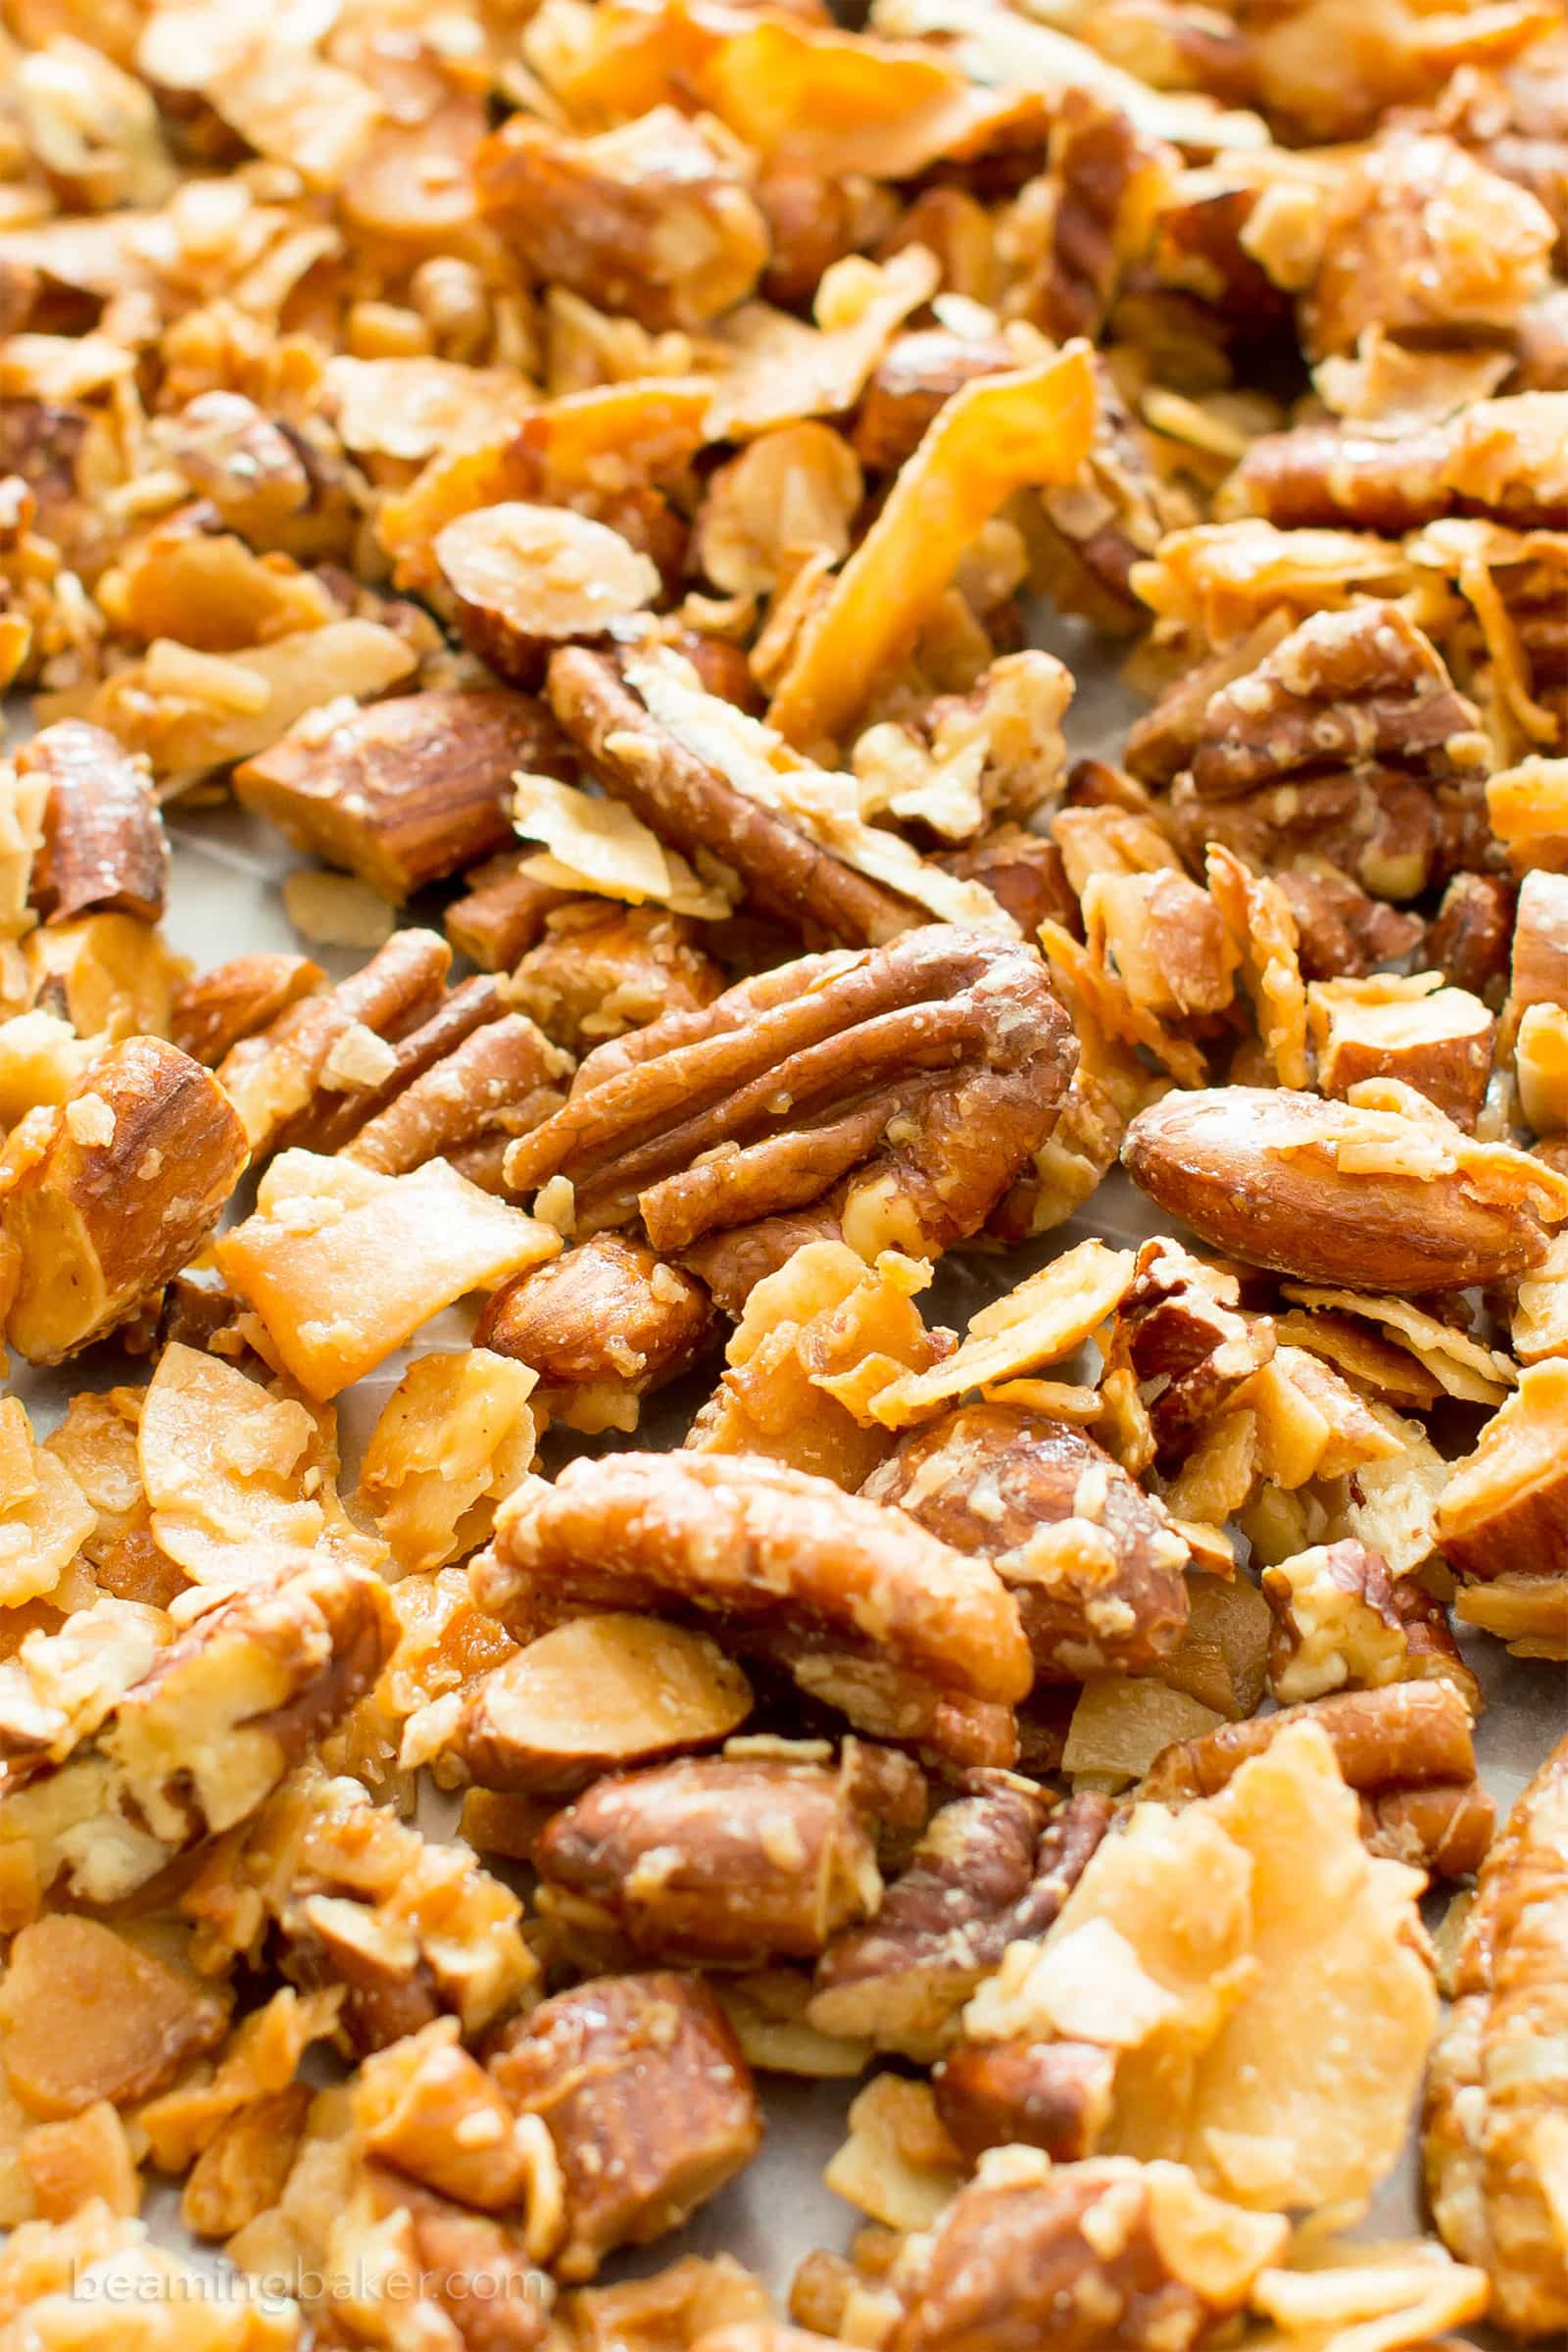 4 Ingredient Coconut Almond Pecan Paleo Granola (V, GF): a quick 'n easy recipe for crunchy, salty & sweet granola packed with whole ingredients. #Paleo #Vegan #Snacks #Healthy #GlutenFree #DairyFree #RefinedSugarFree | BeamingBaker.com